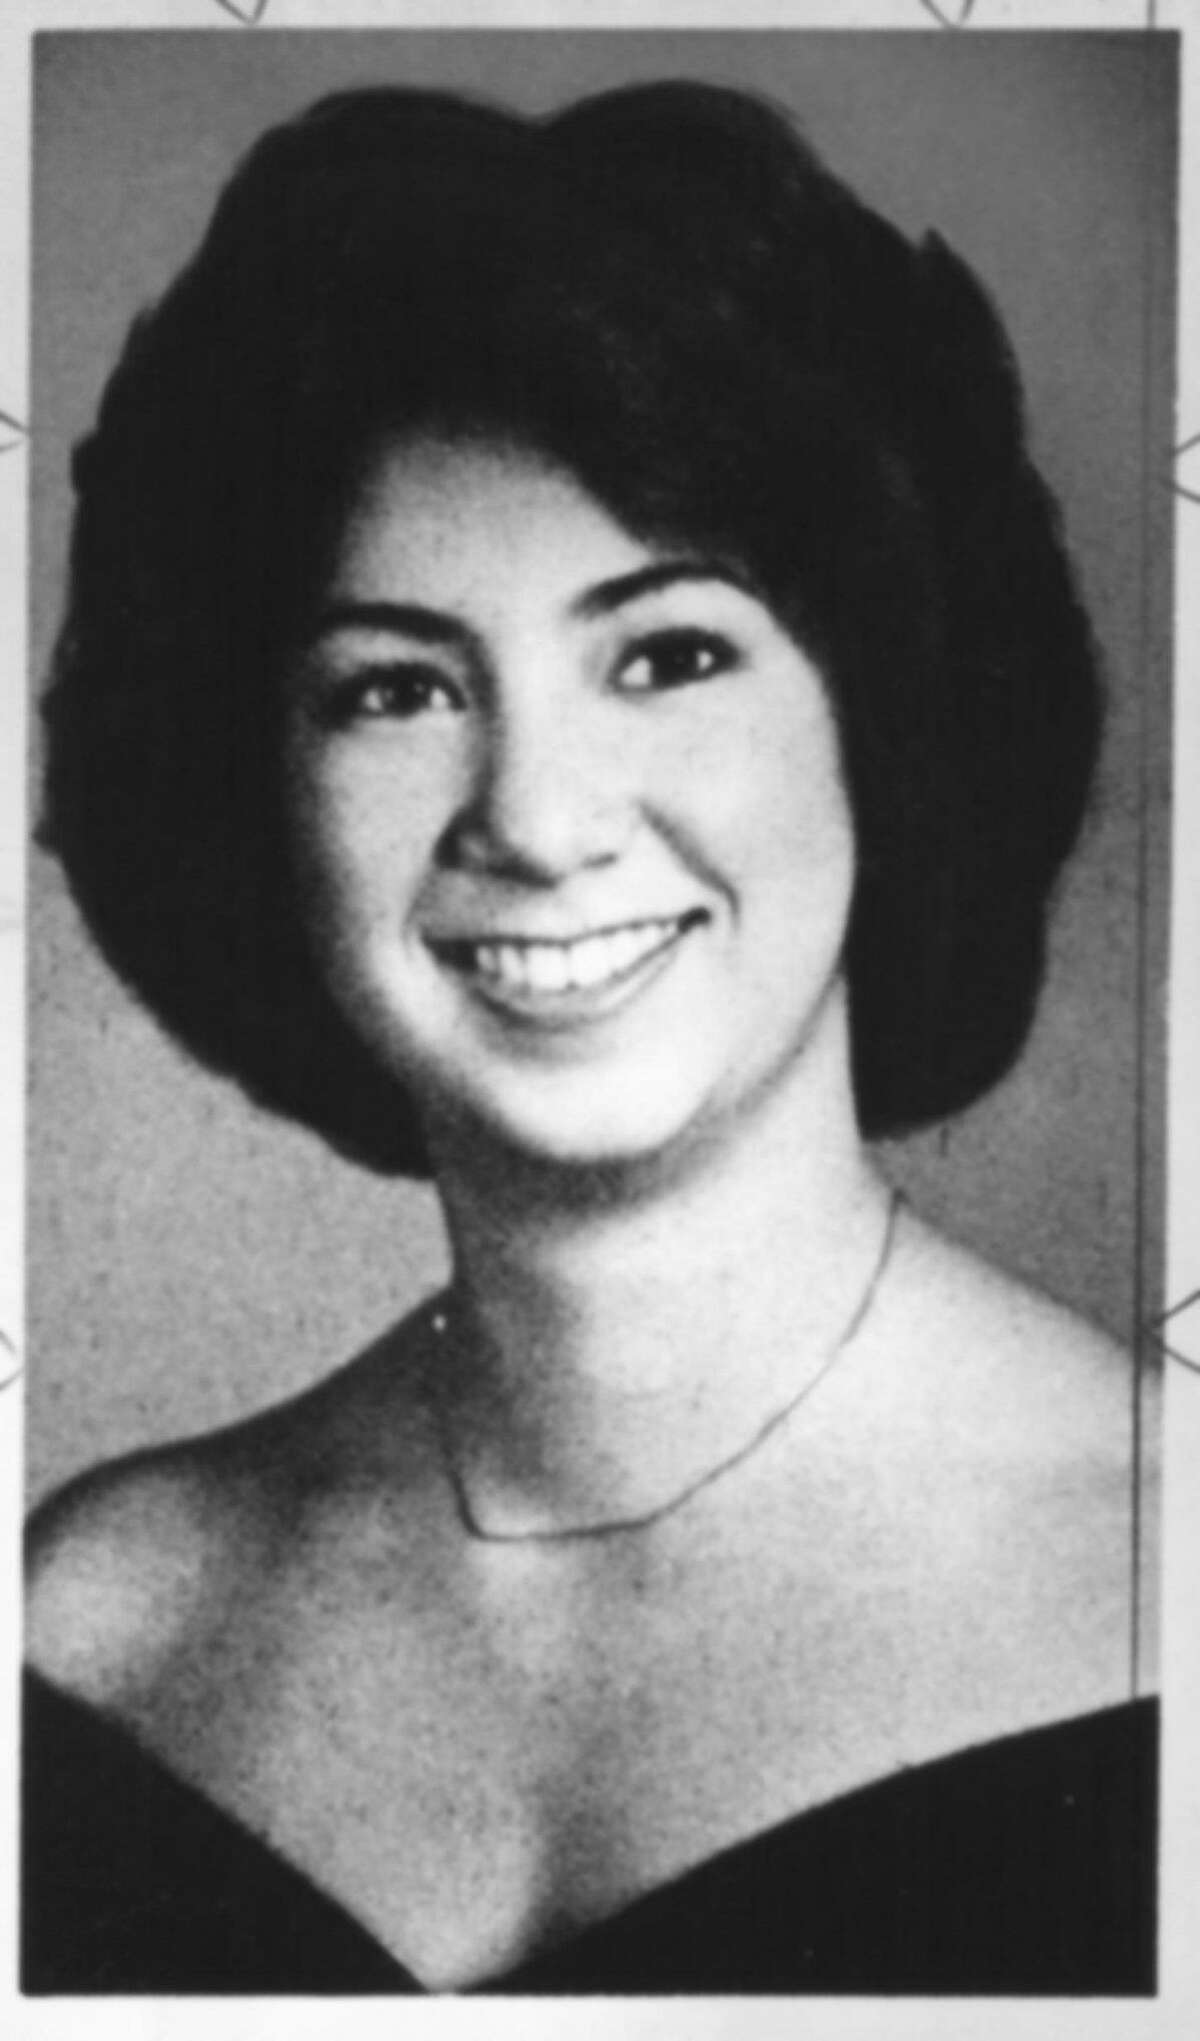 Cynthia Moreland, 18, of Cotati was shot to death, along with her fiance, Richard Stowers, on Mount Wittenberg at Point Reyes National Seashore on Oct. 11, 1980, by the Trailside Killer David Joseph Carpenter.